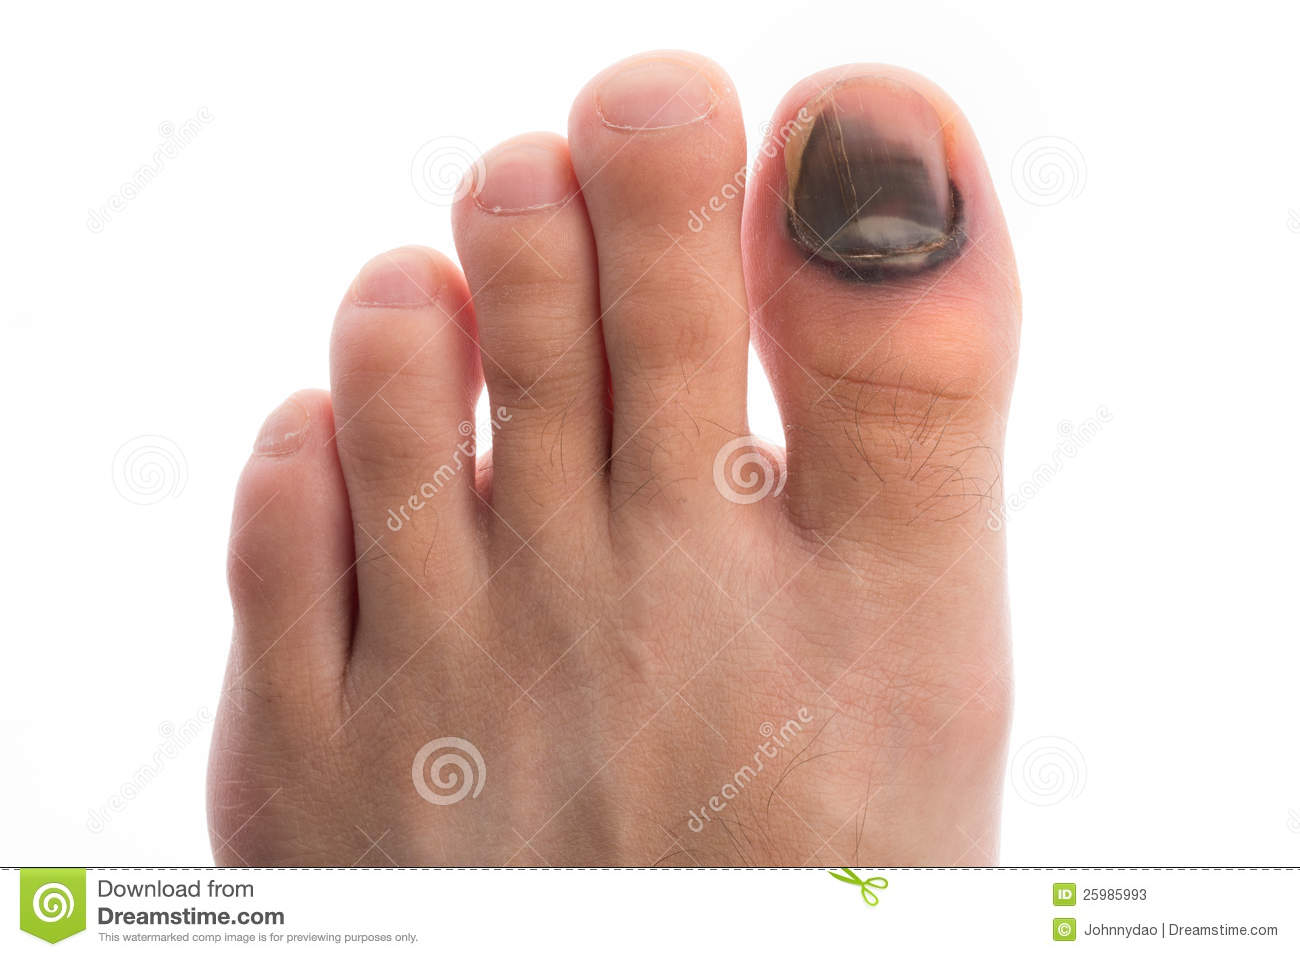 What Do Toe bleeding Symbolize in Dreams and How to ...